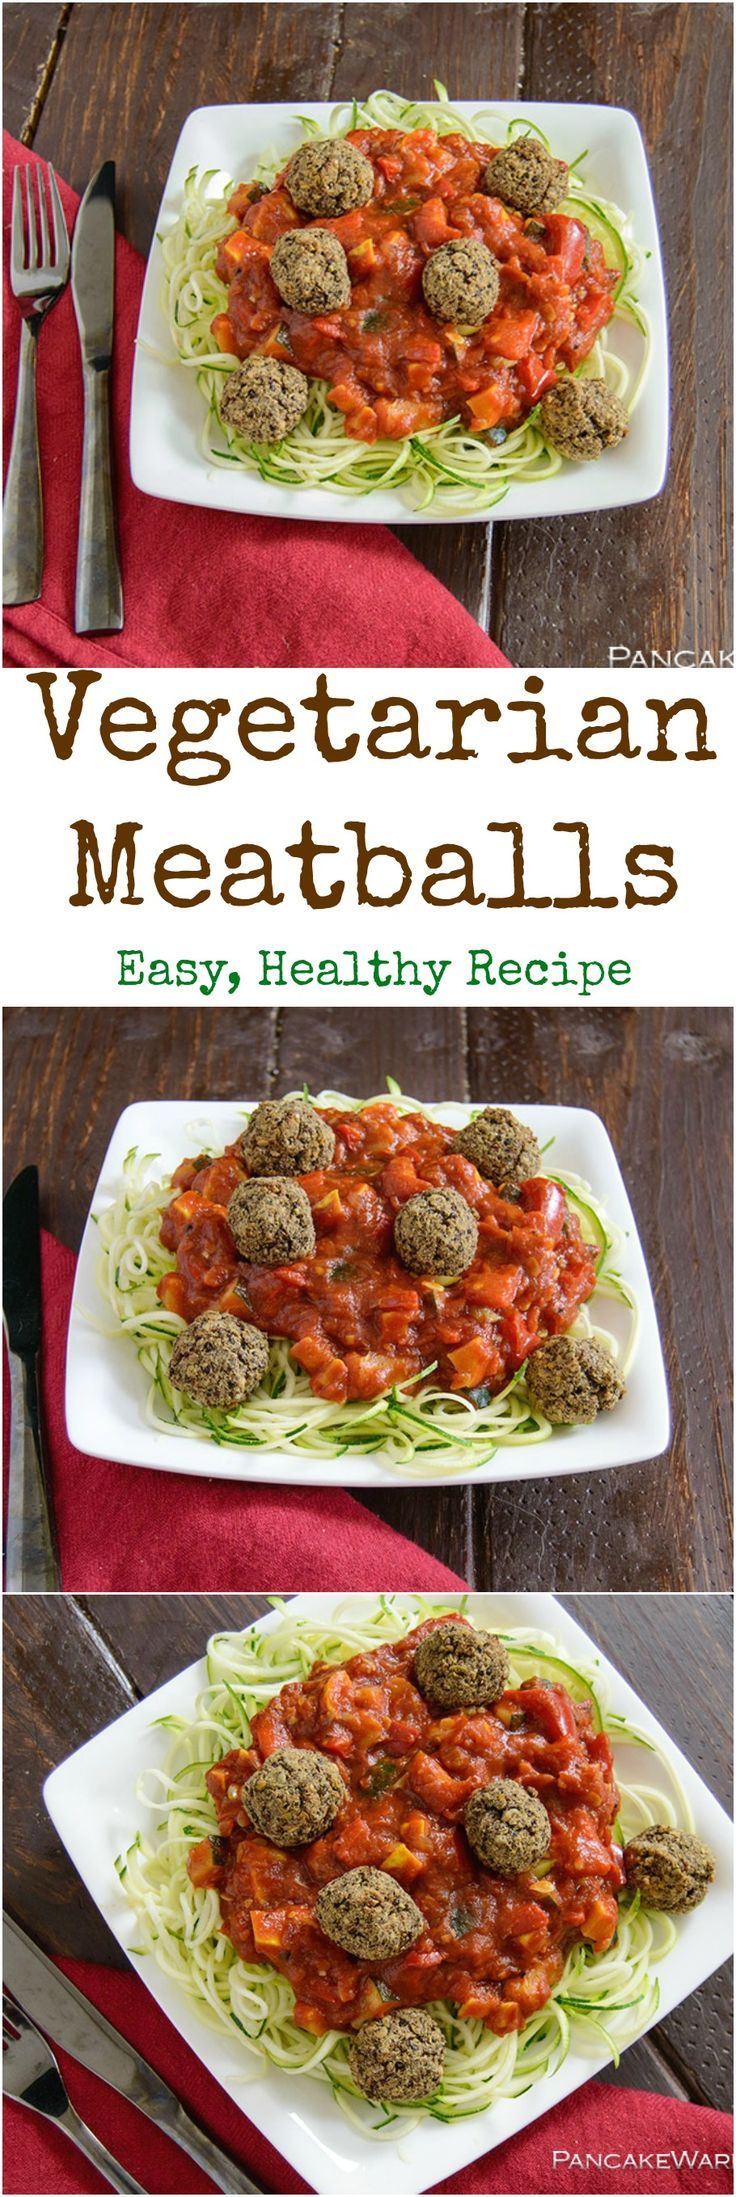 Vegetarian Meatballs - this healthy recipe is full of flavor and easy to make. Gluten free, low fat, vegan and high protein. This dish will impress meat eaters and veggies alike!